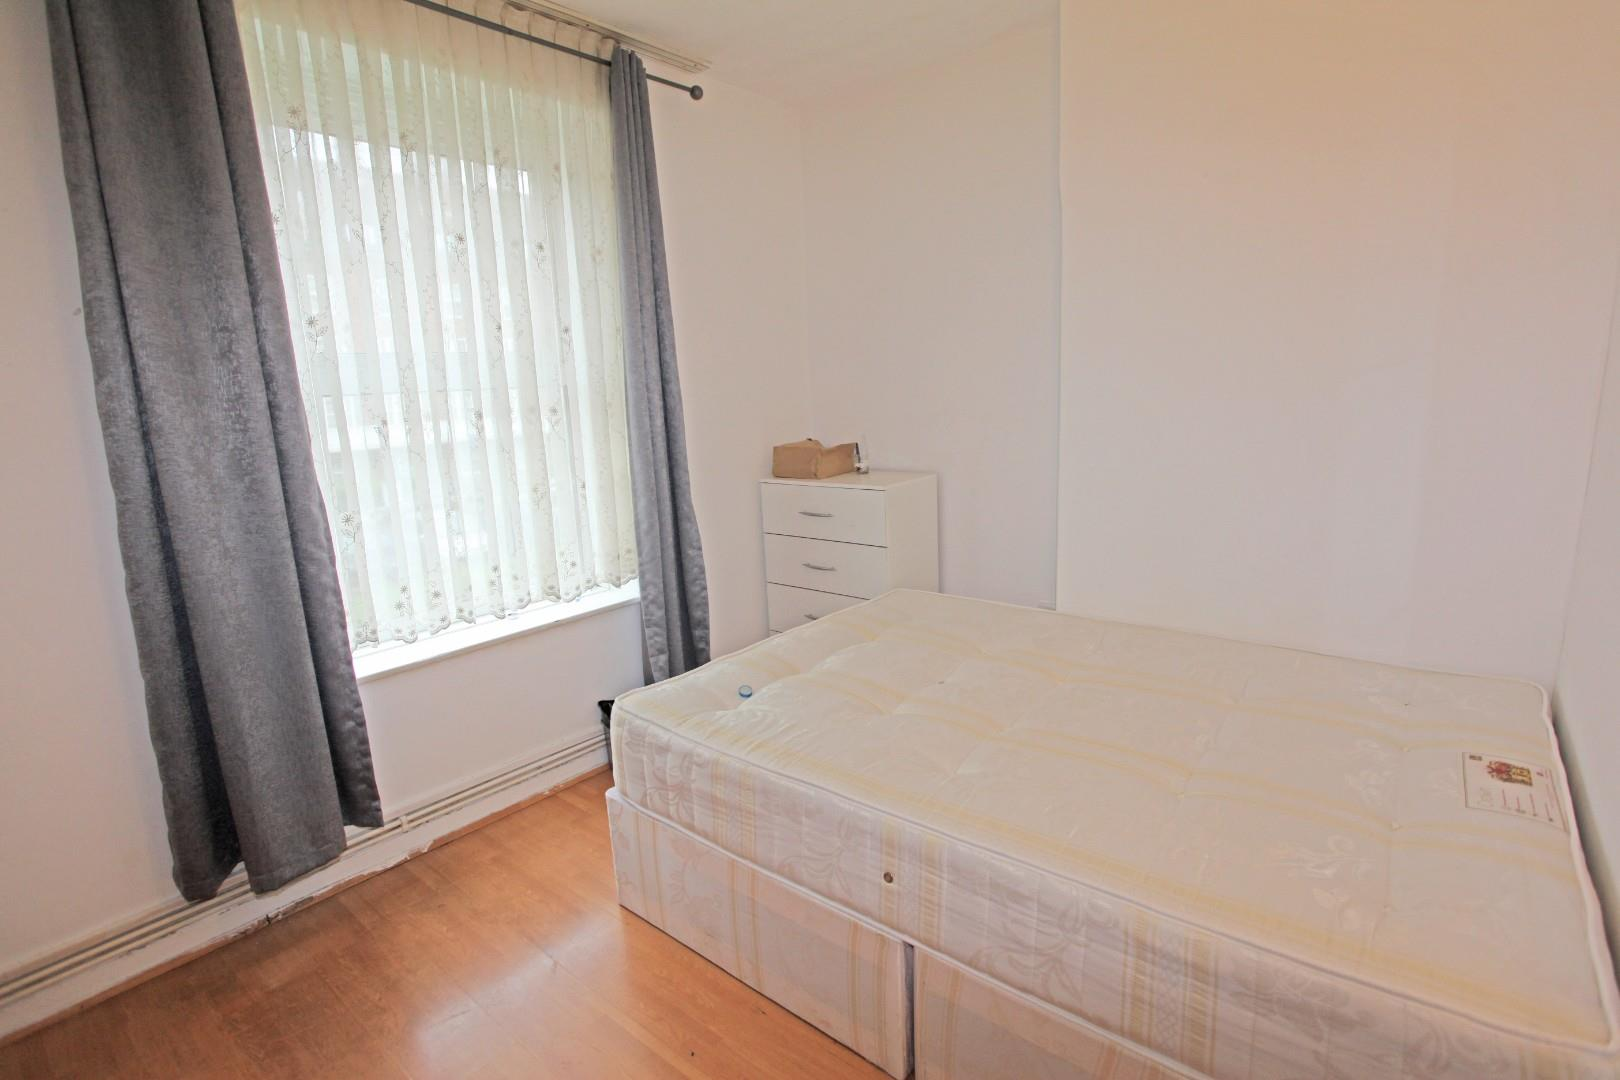 3 Bedroom Flat For Sale in Stamford Hill ARRAN HOUSE,